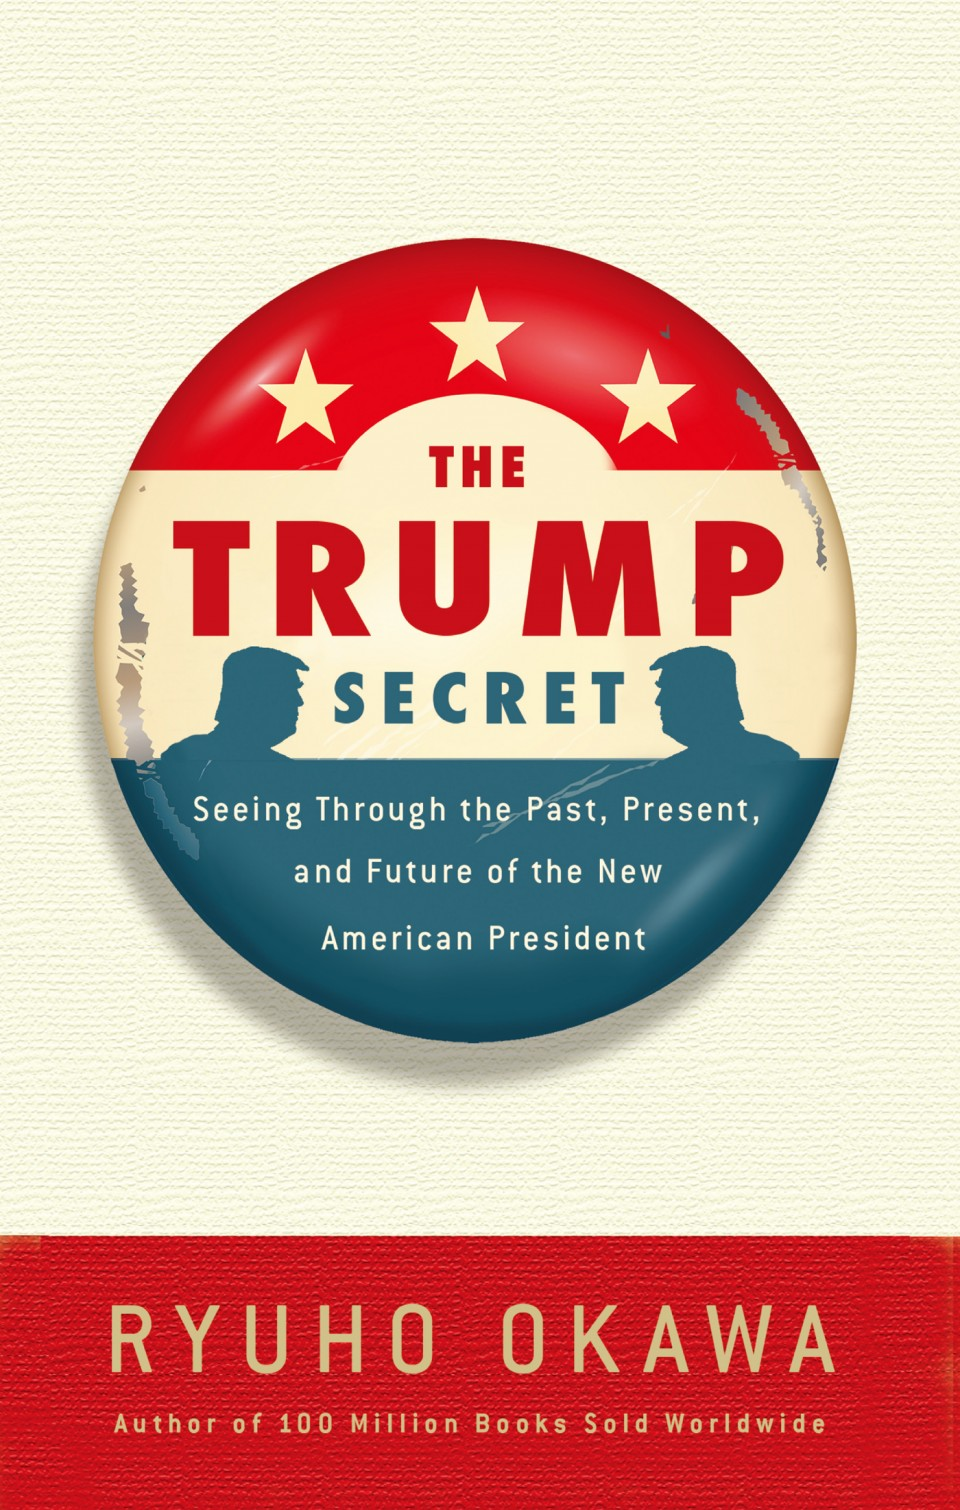 The Trump Secret: Seeing Through the Past, Present, and Future of the New American President  is out now!